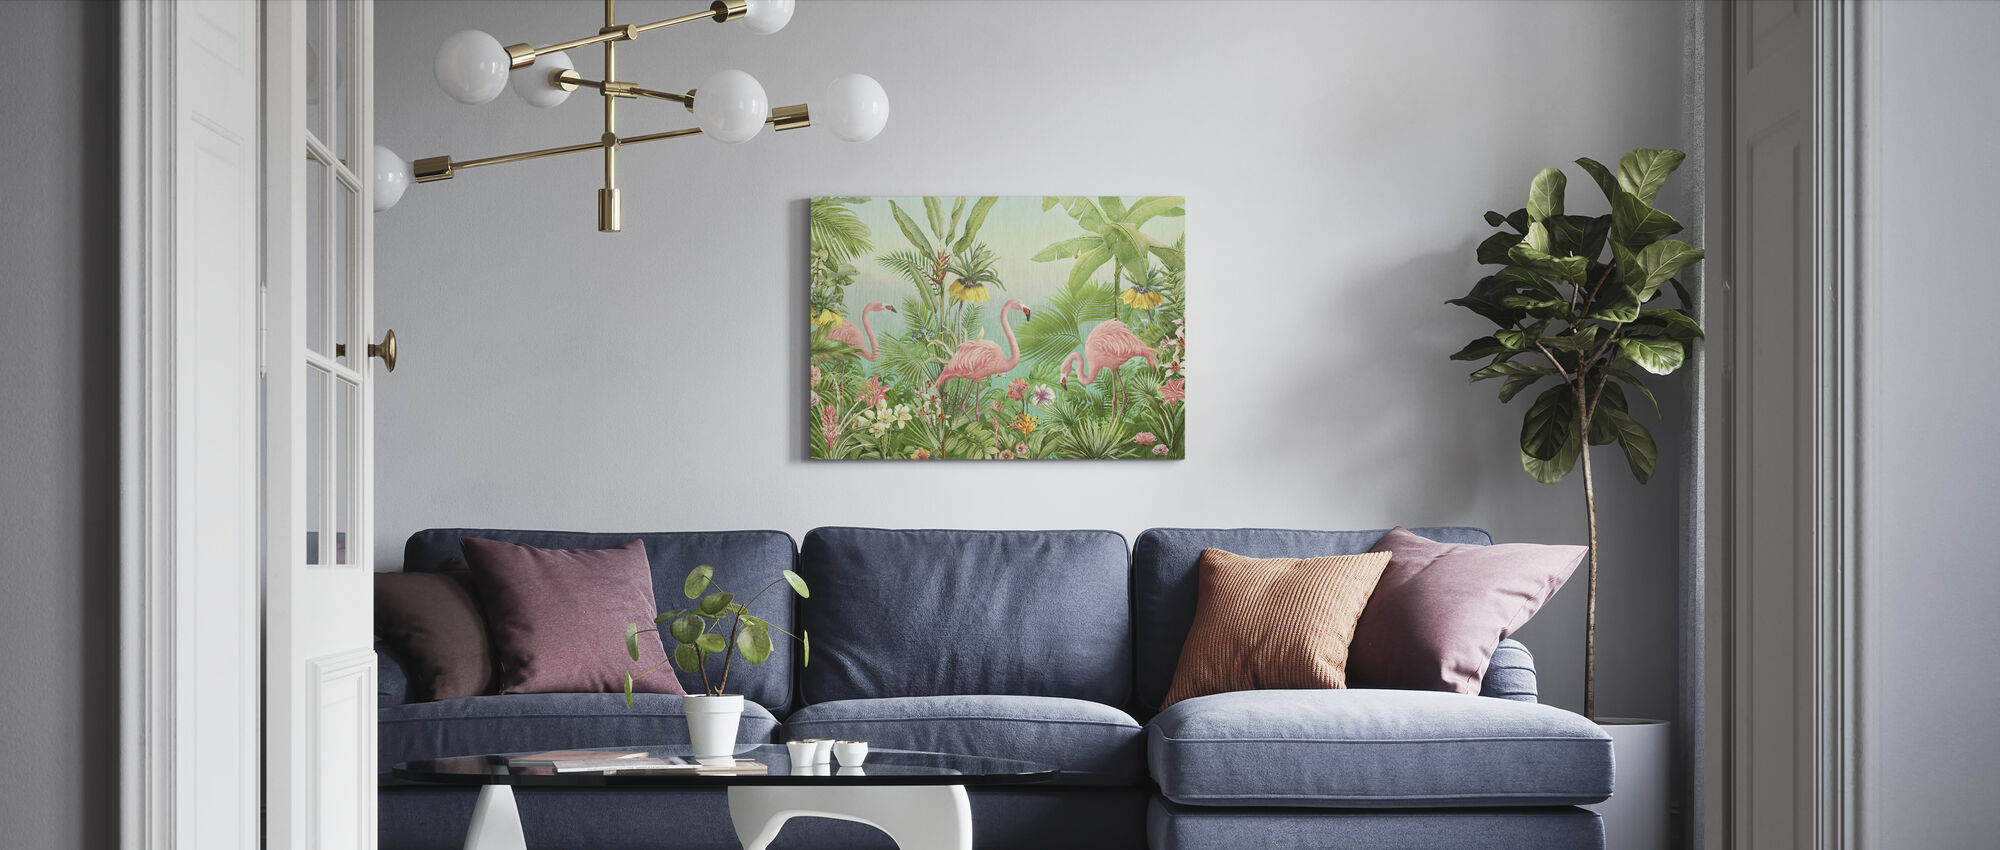 Flamingo Eden - Canvas print - Living Room